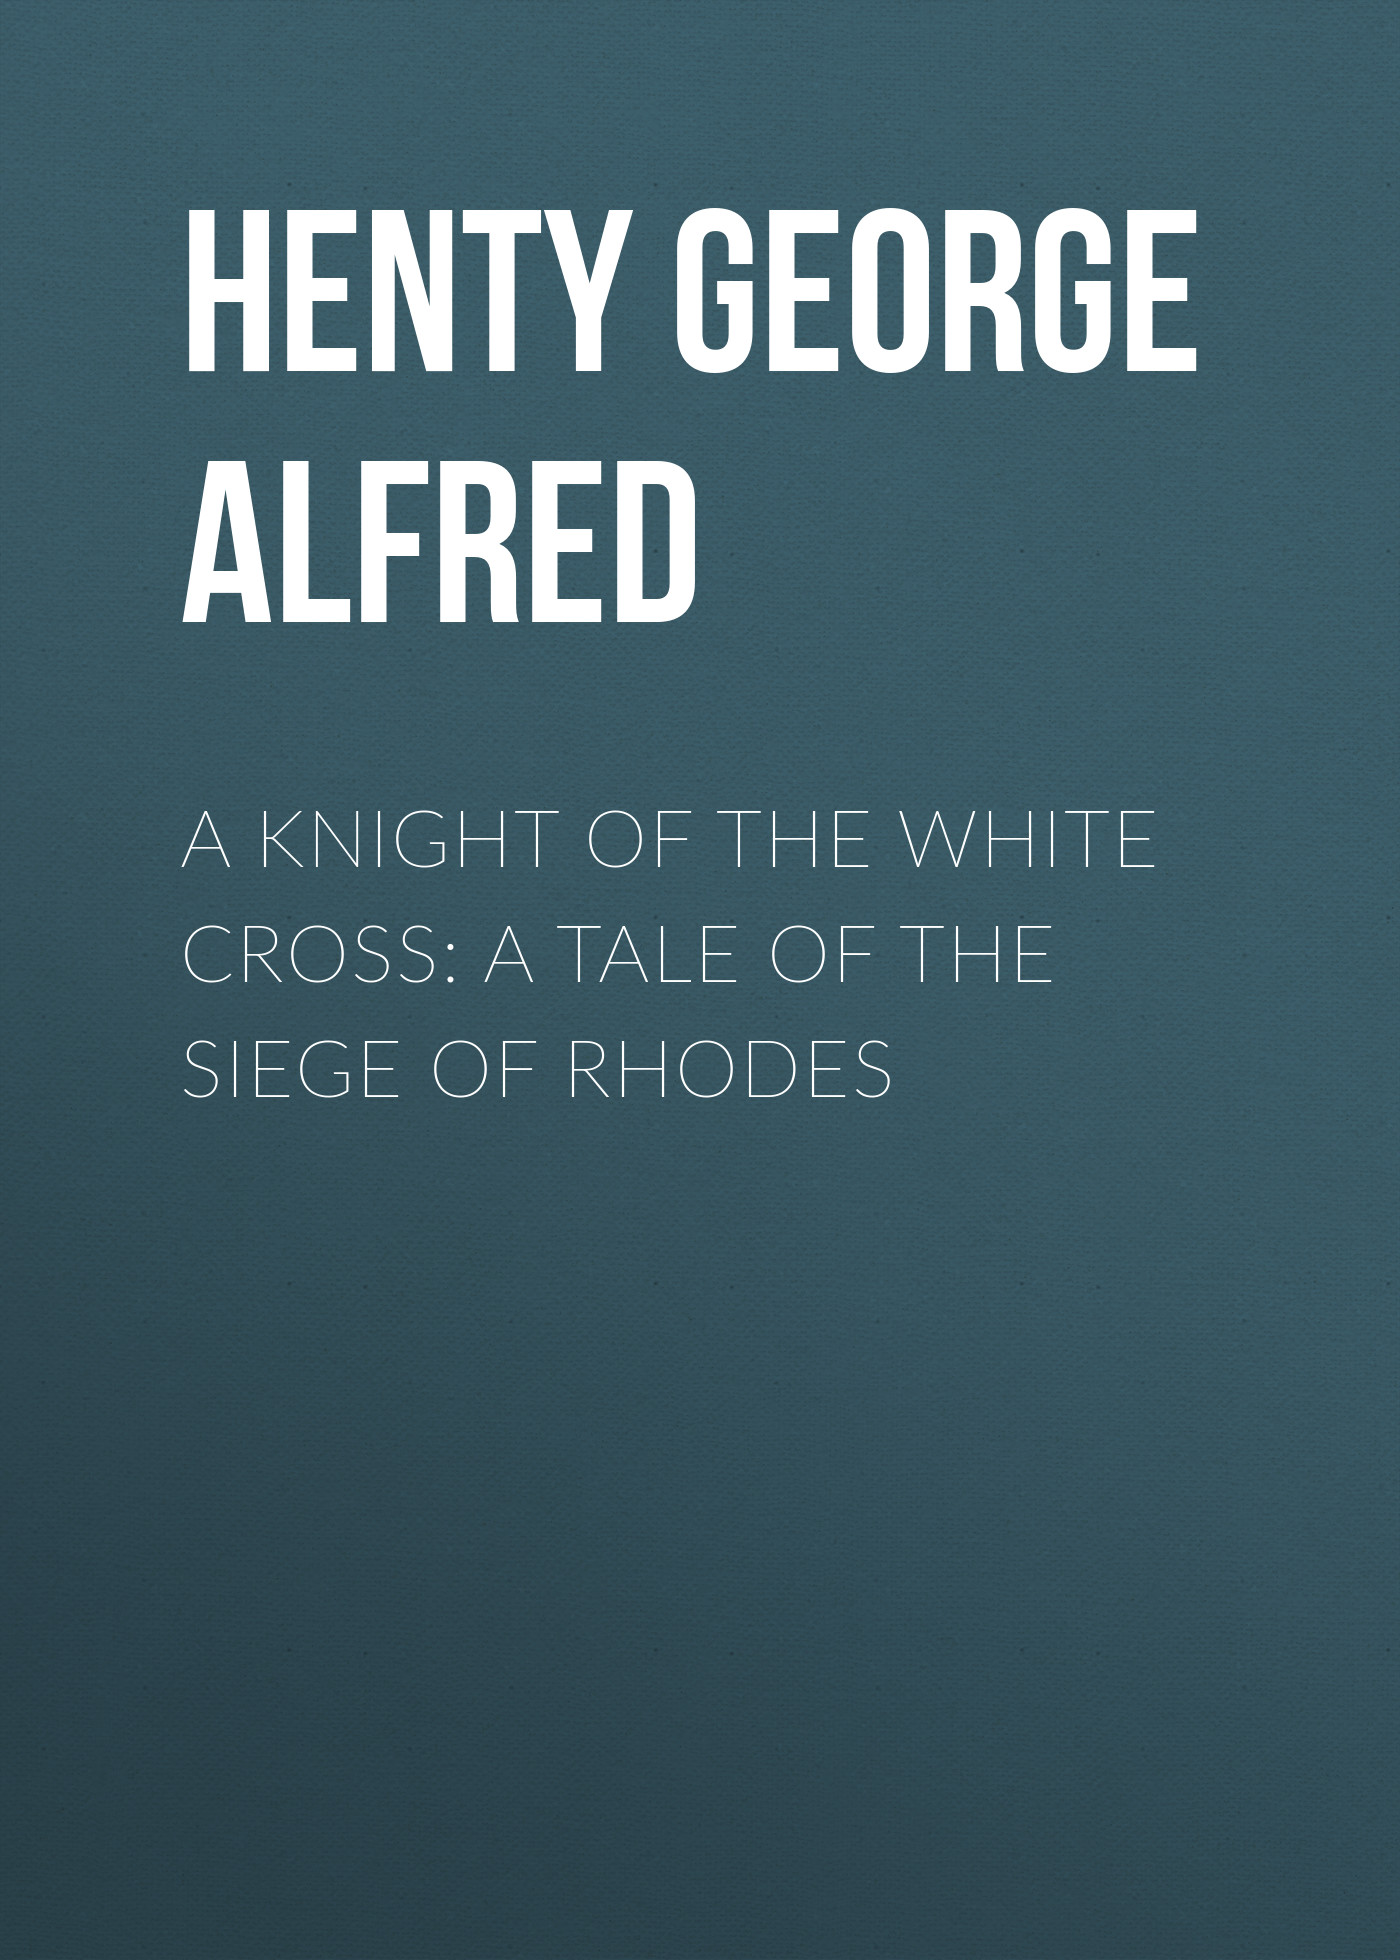 Henty George Alfred A Knight of the White Cross: A Tale of the Siege of Rhodes henty george alfred in the reign of terror the adventures of a westminster boy